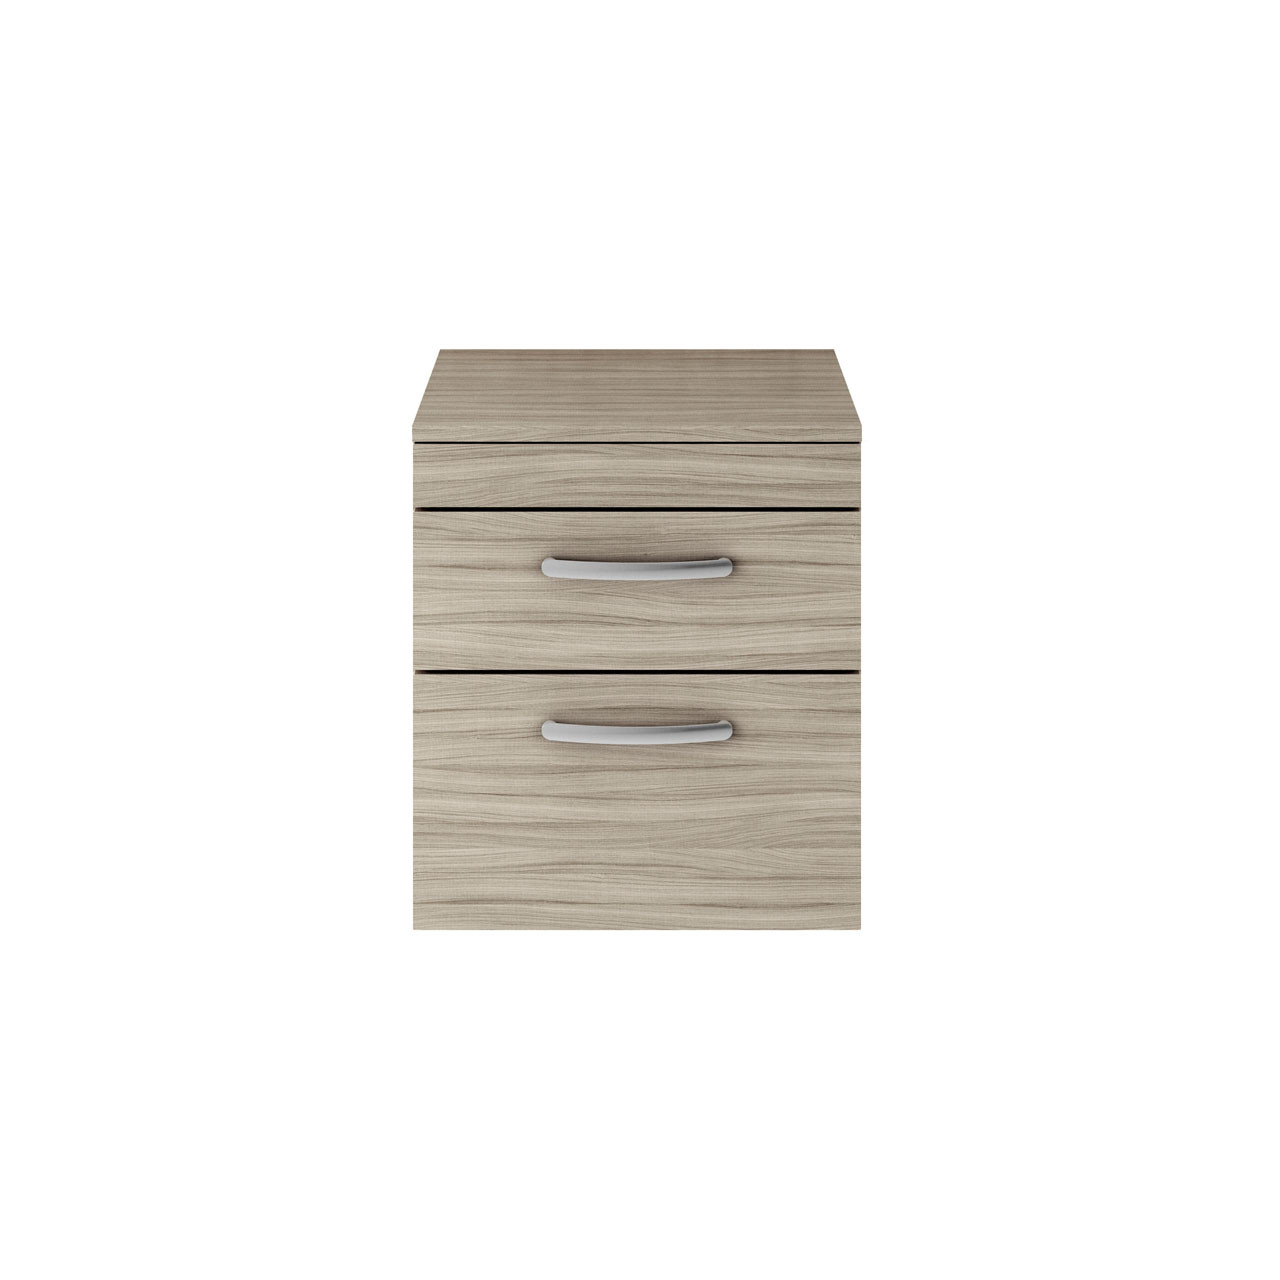 Premier Athena Driftwood 500mm Wall Hung 2 Drawer Vanity Unit with Worktop - ATH015W